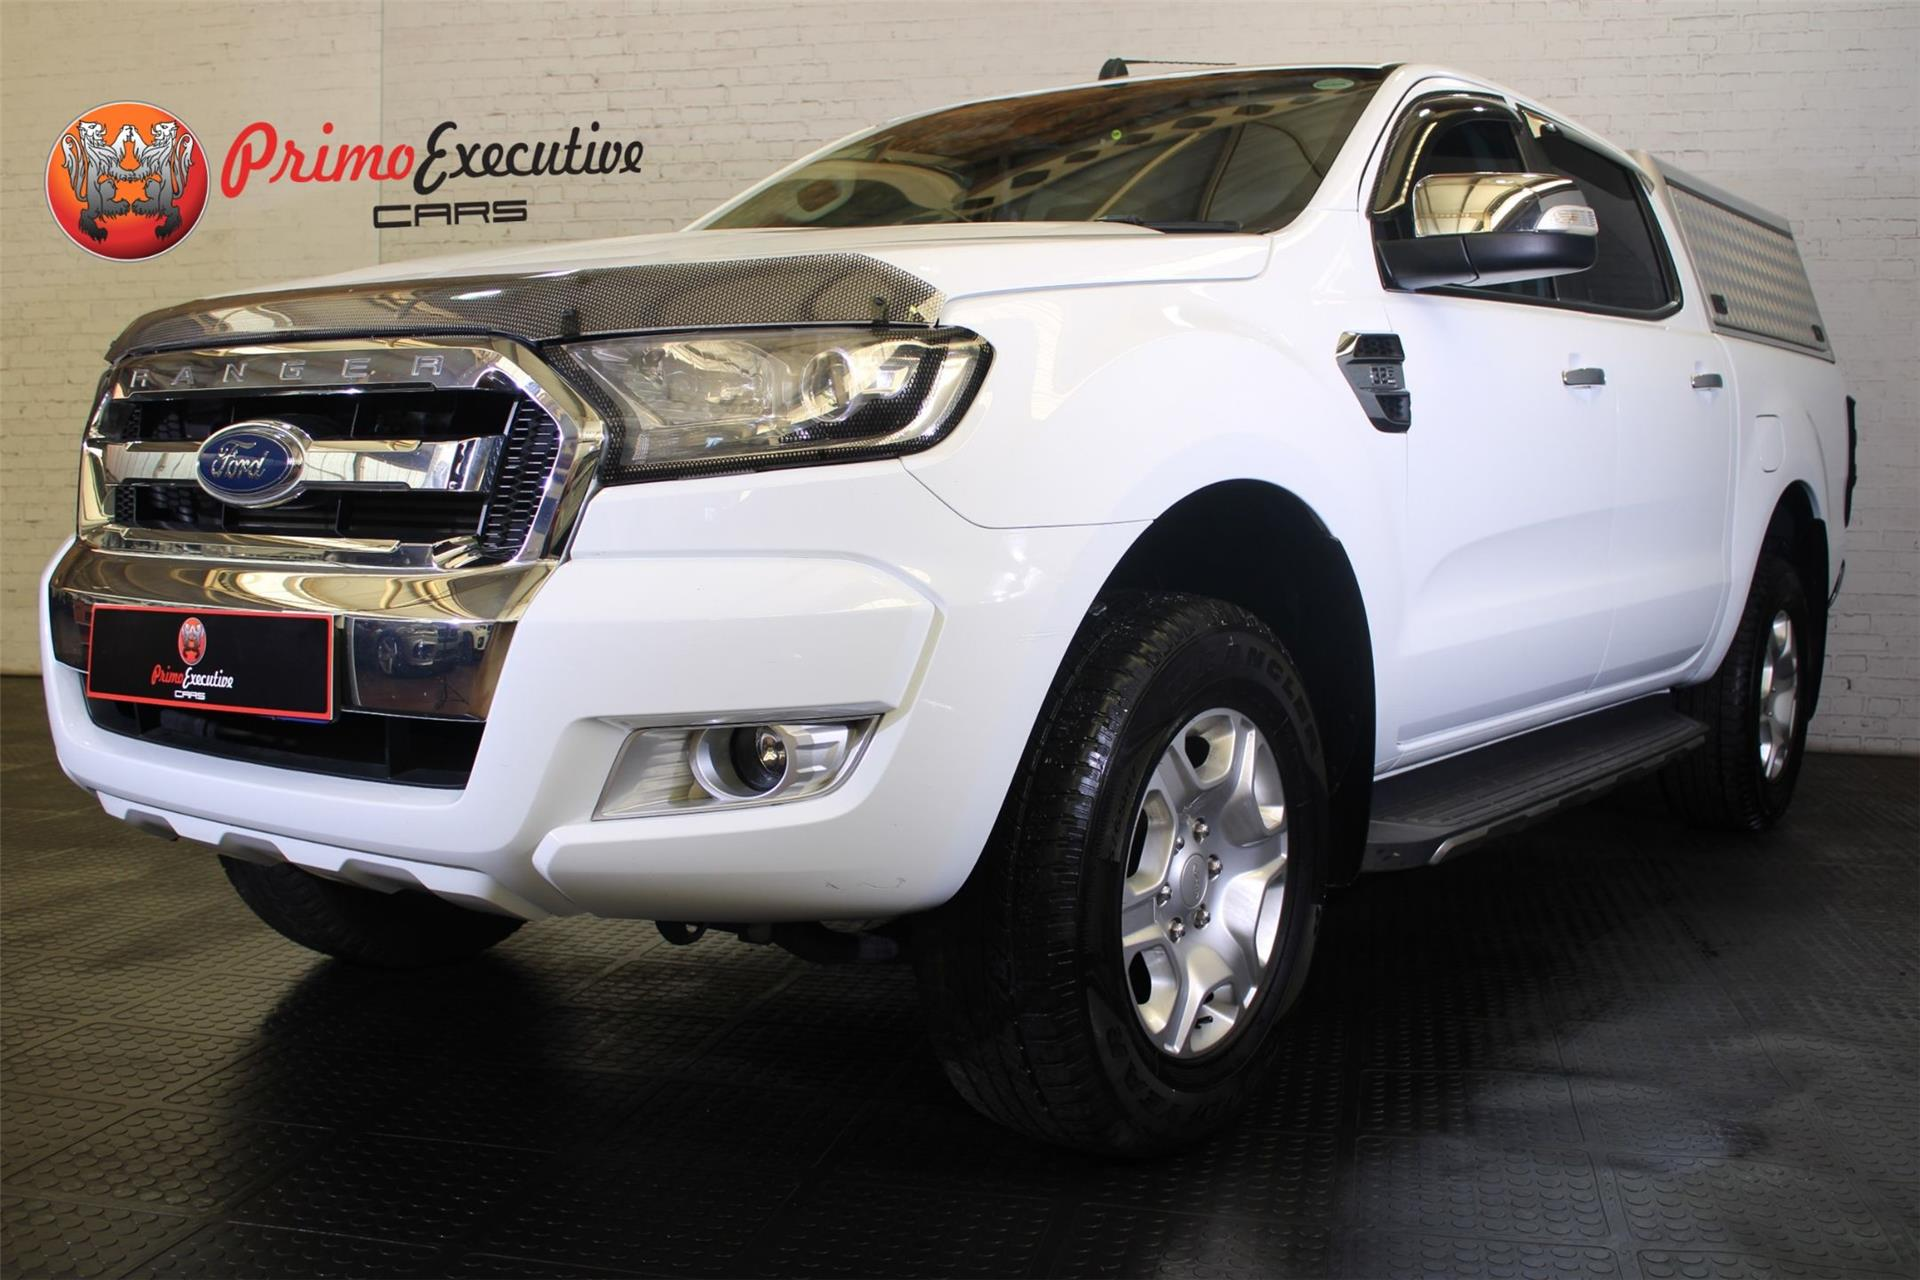 Ford Ranger 3.2 double cab Hi-Rider XLT auto